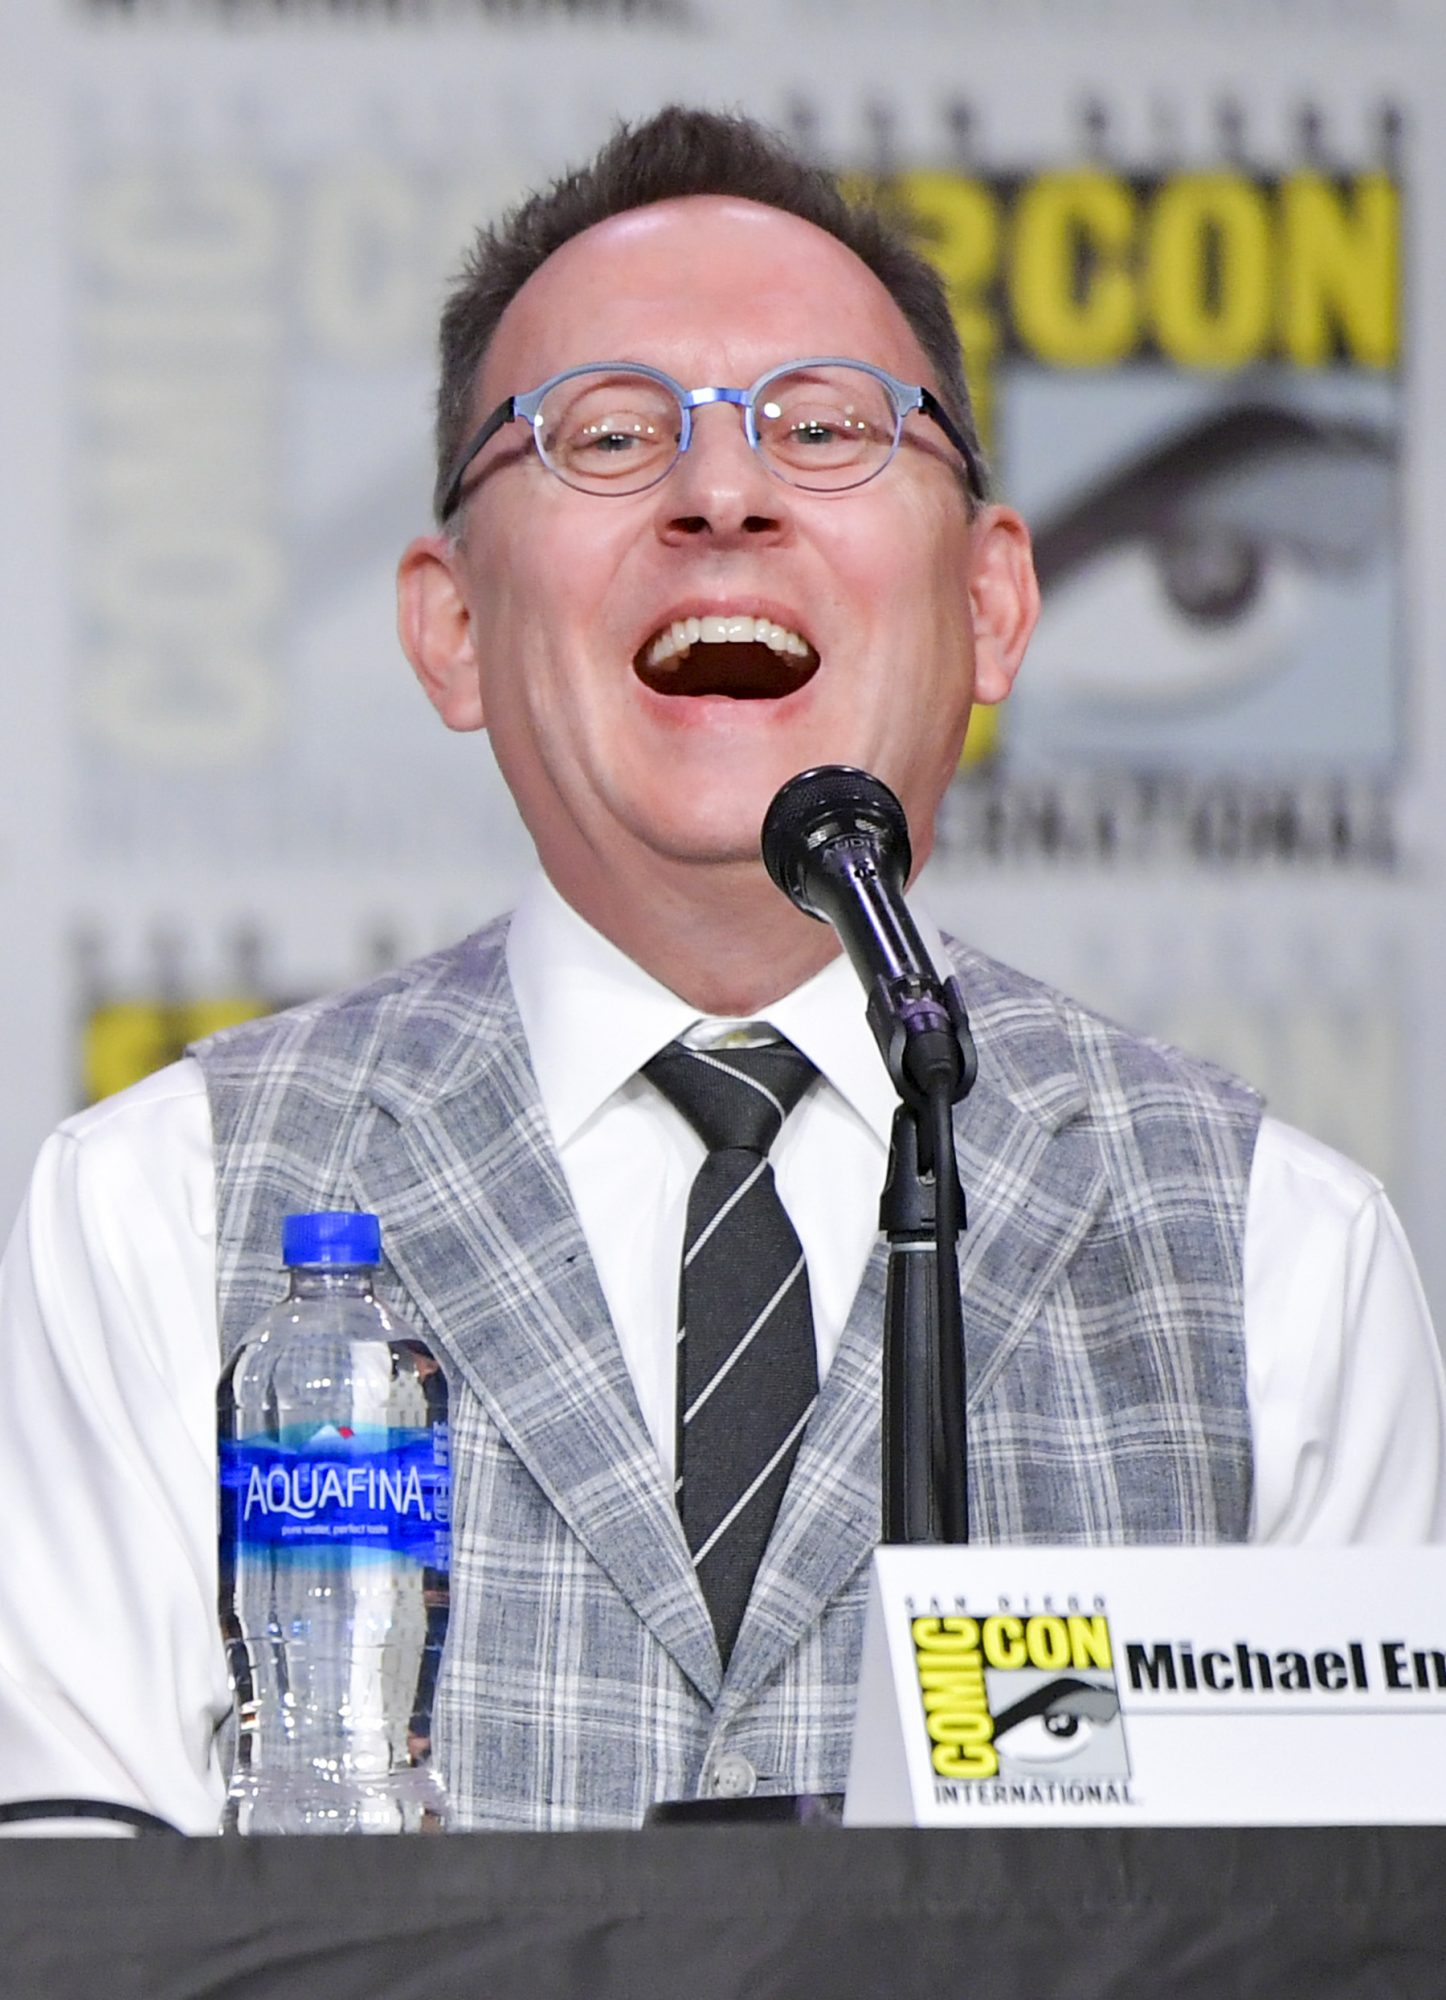 SAN DIEGO, CALIFORNIA - JULY 19: Michael Emerson speaks onstage during Entertainment Weekly: Brave Warriors at San Diego Convention Center on July 19, 2019 in San Diego, California. (Photo by Amy Sussman/Getty Images)